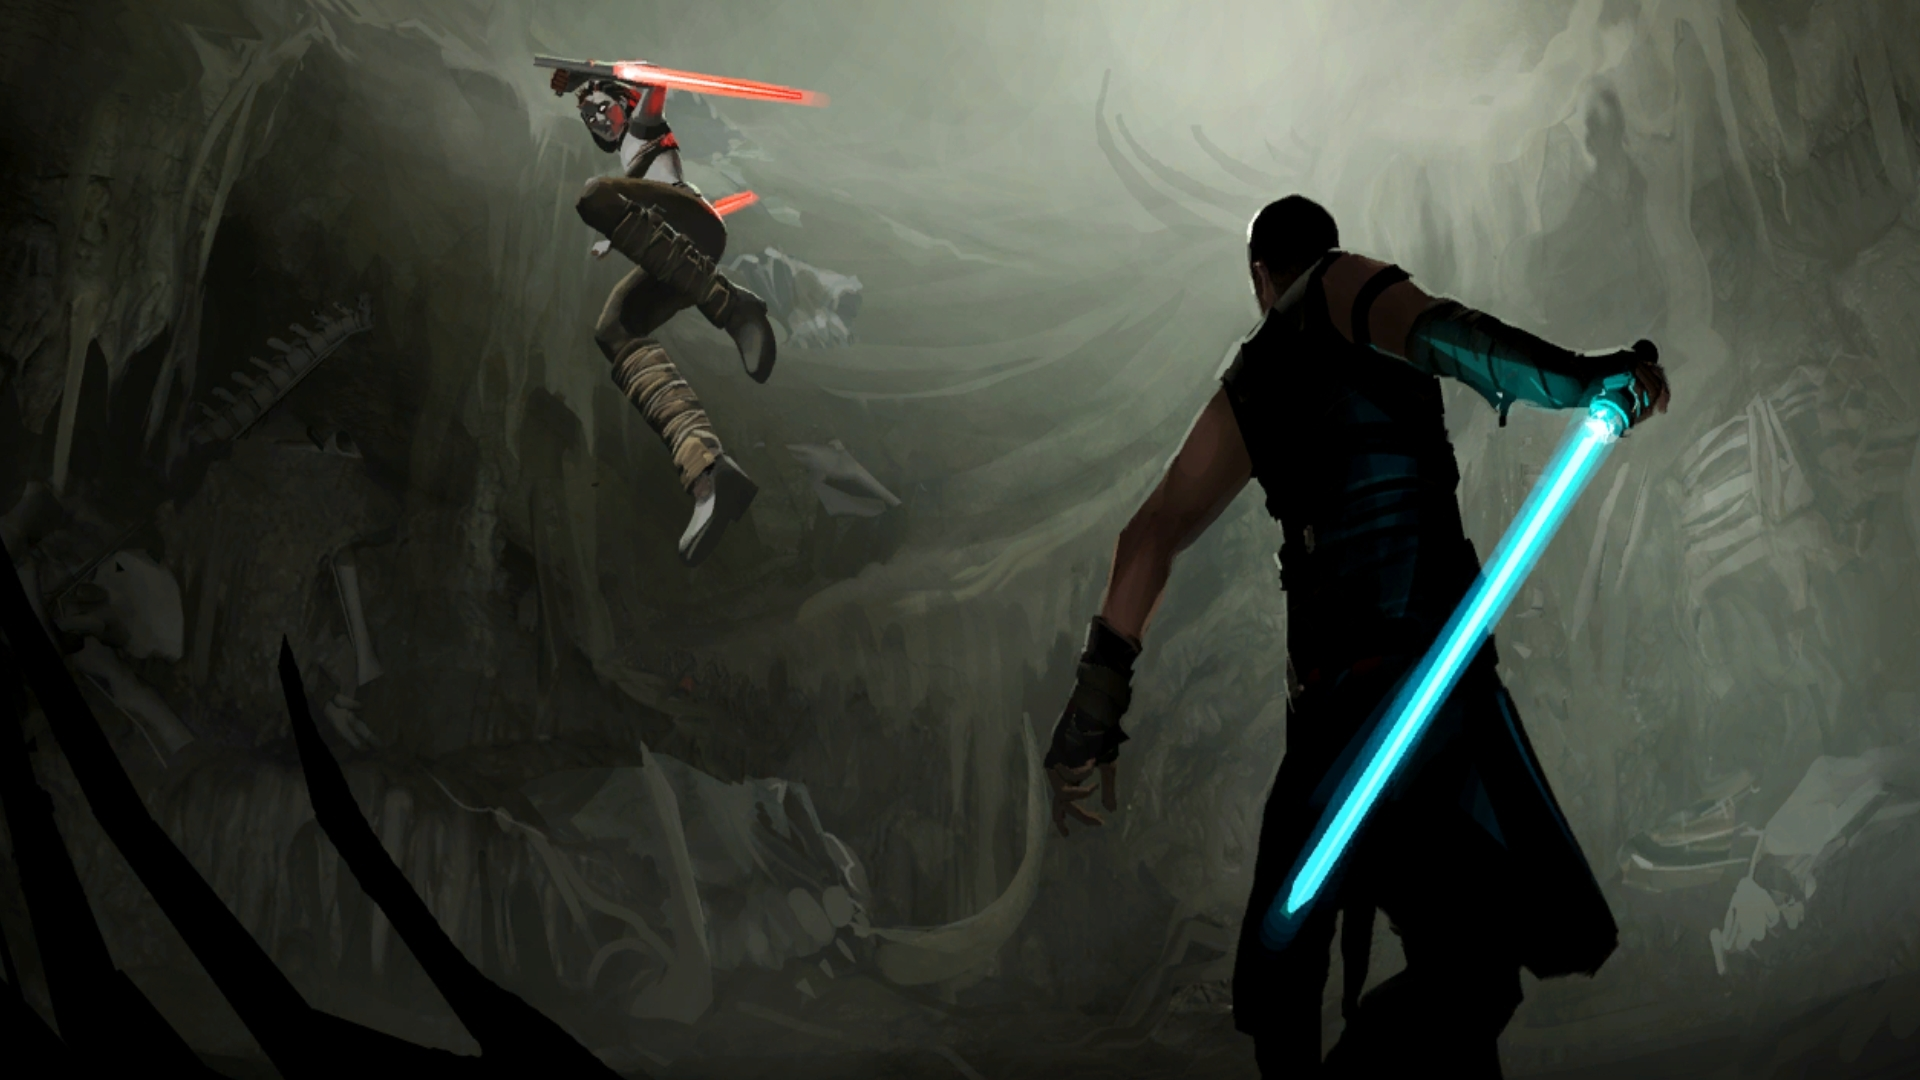 Star wars sith jedi battle swords wallpaper   ForWallpapercom 1920x1080